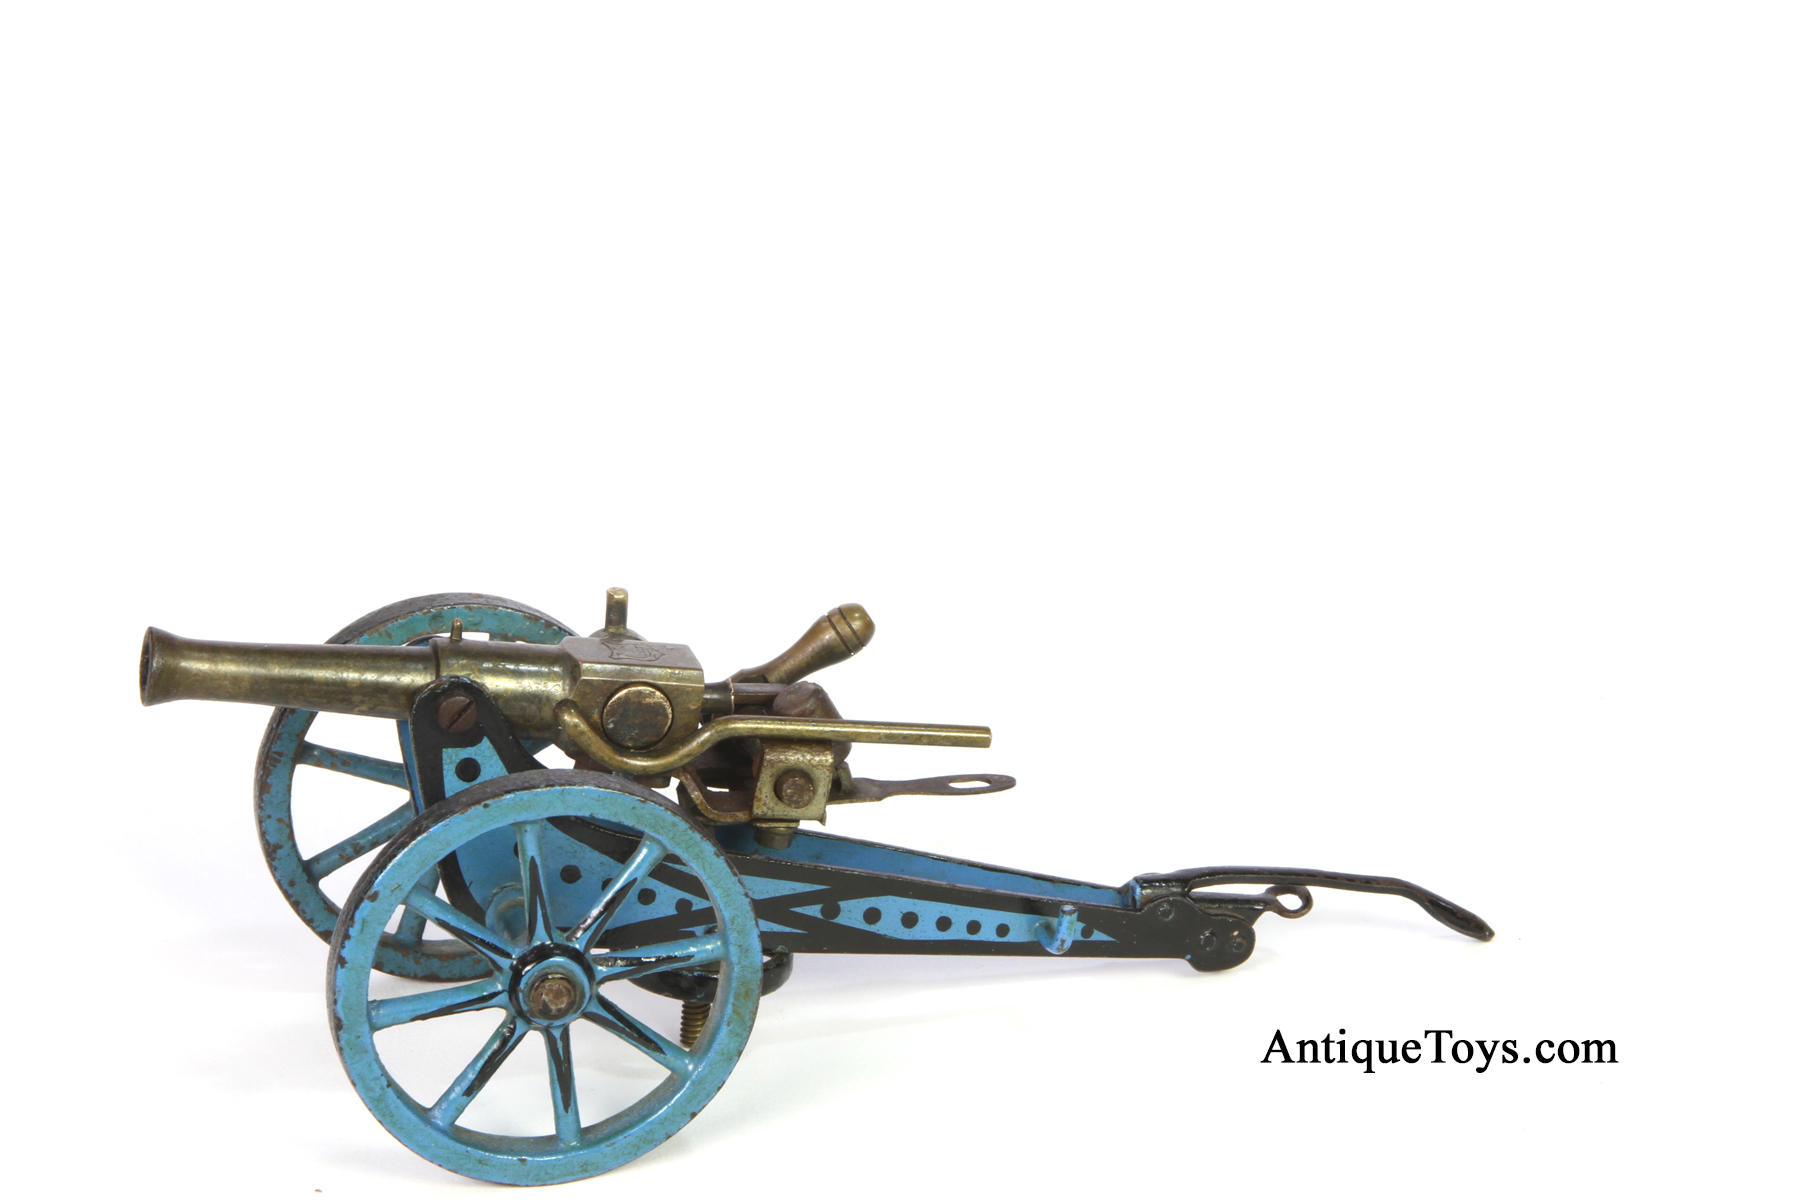 Marklin Field Cannon Old Toy For Sale Sold Antique